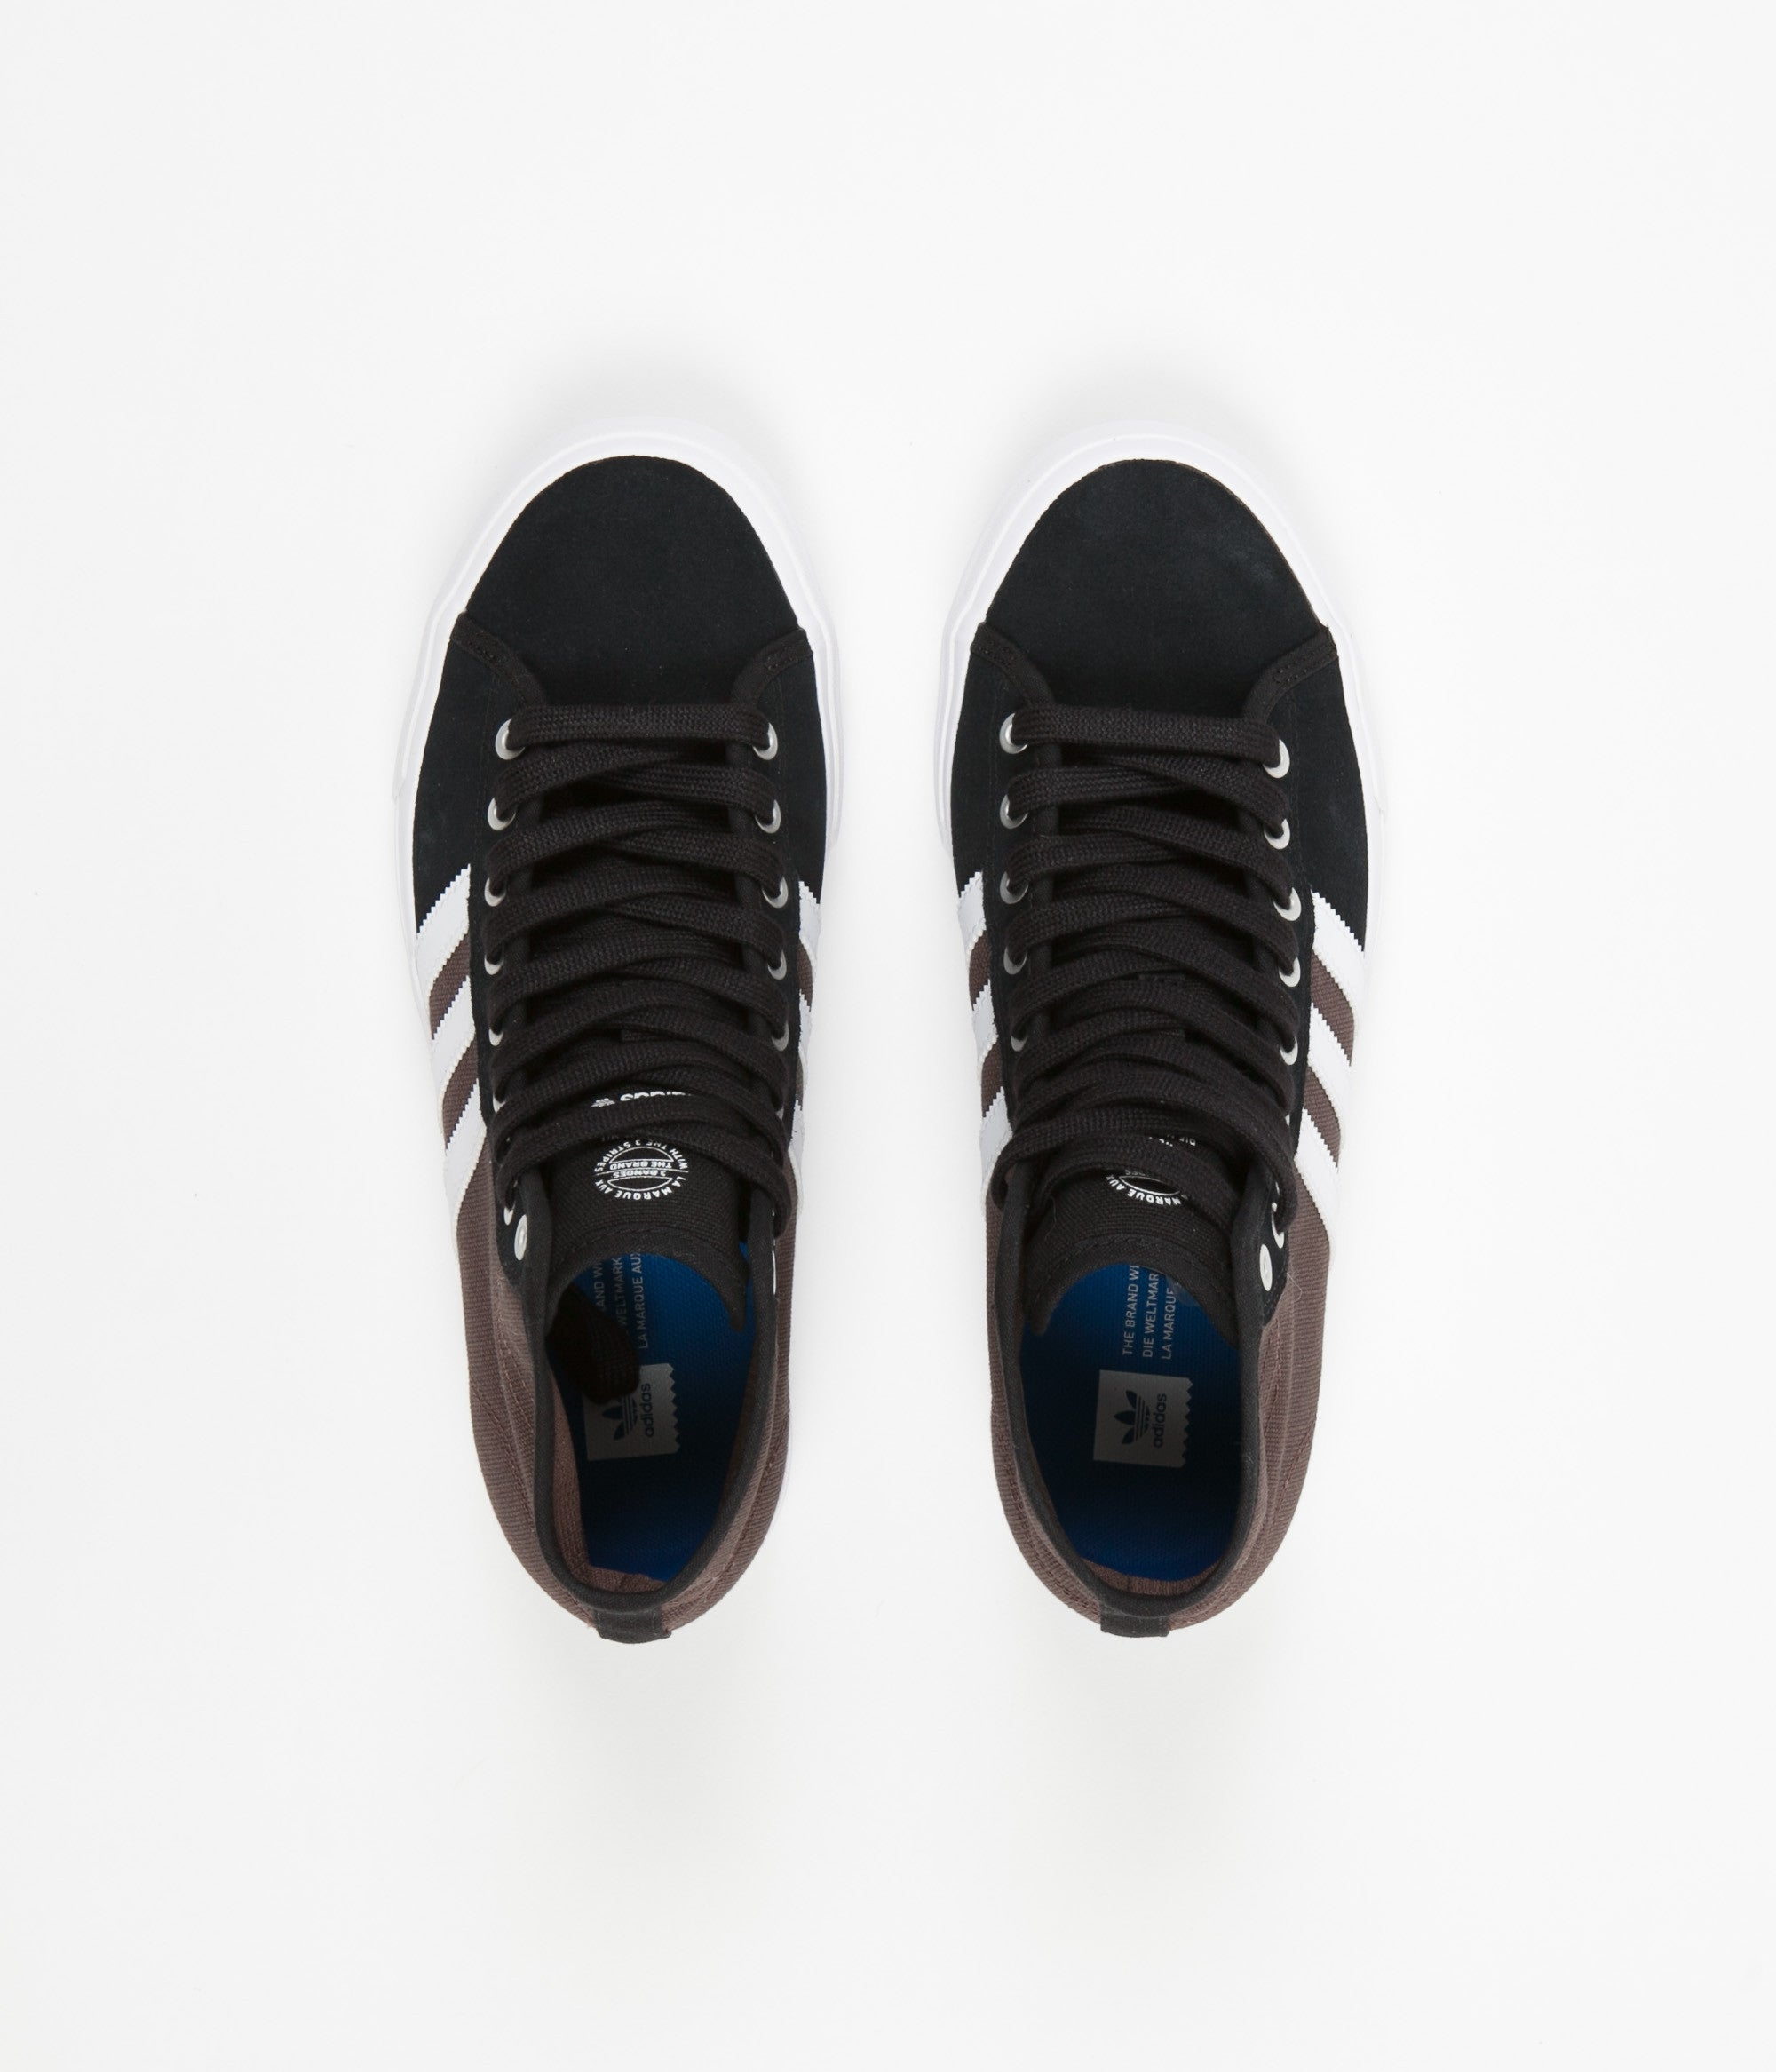 Adidas Matchcourt High RX Shoes - Core Black / White / Brown